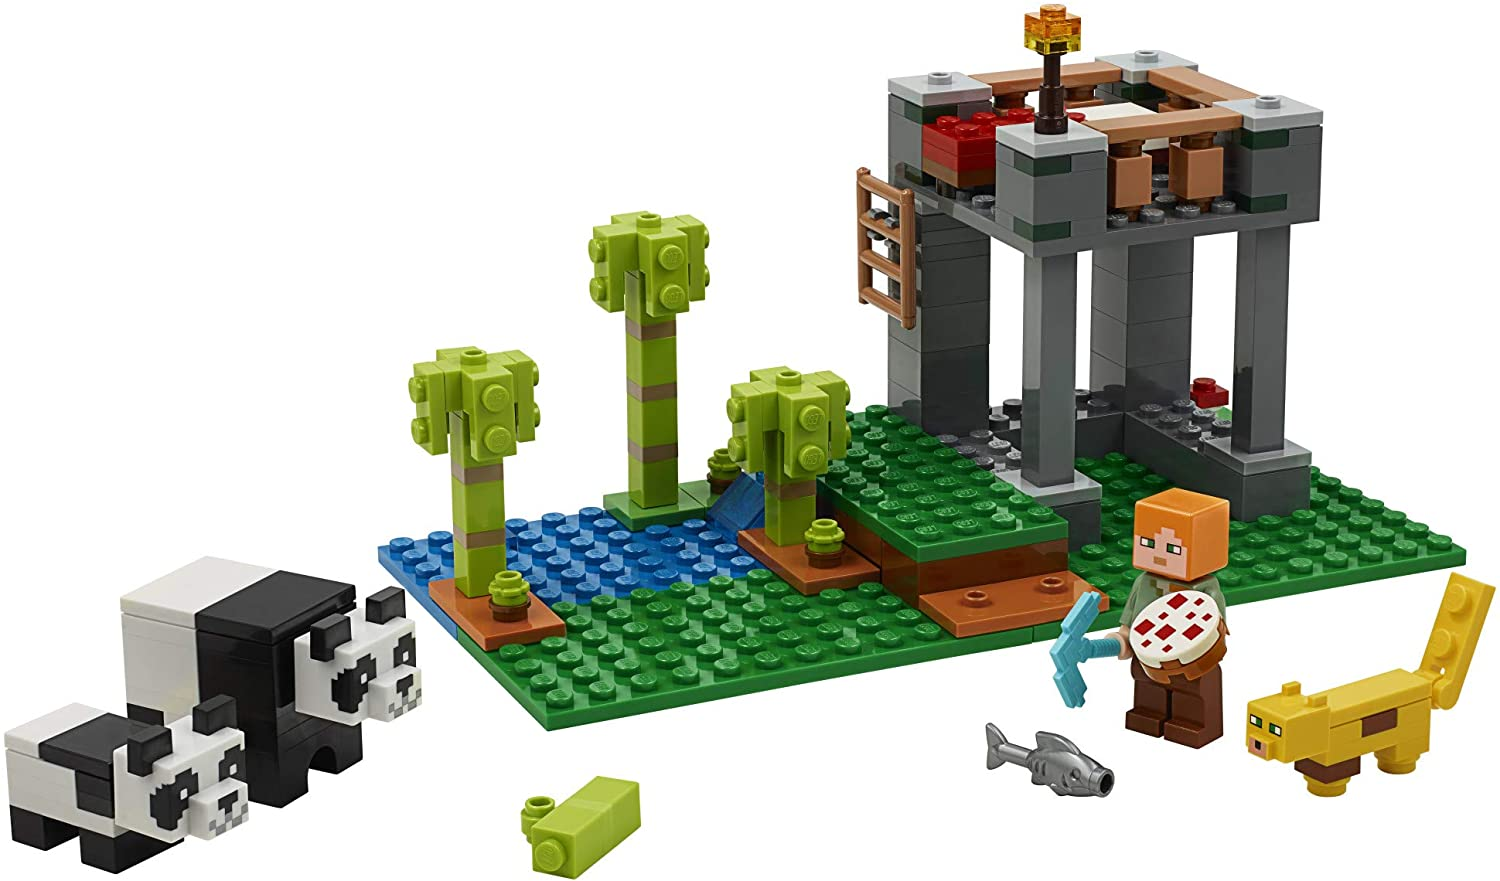 LEGO Minecraft The Panda Nursery 21158 Construction Toy for Kids, Great Gift...